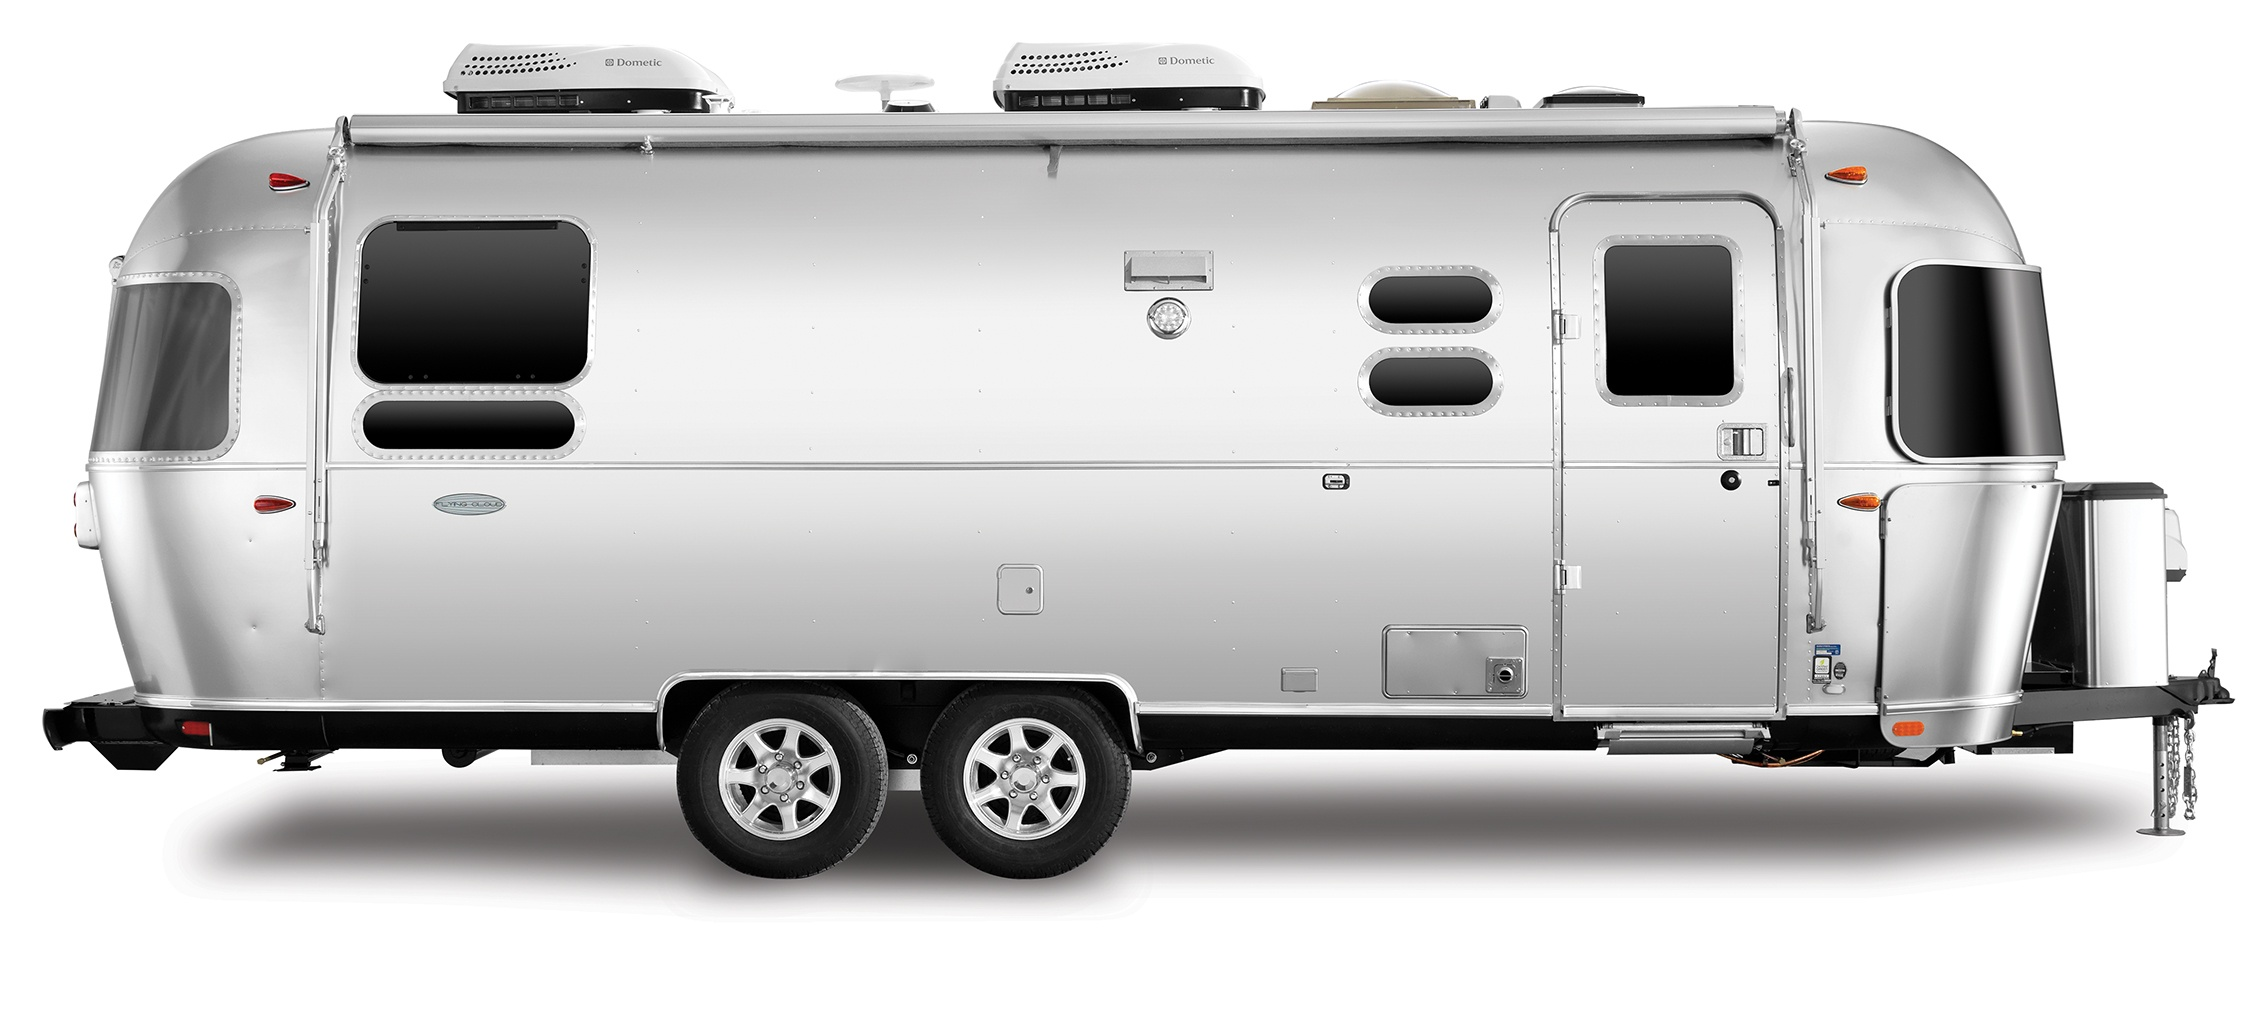 Innovative Whatu0026#39;s New With The 2018 Flying Cloud | Airstream